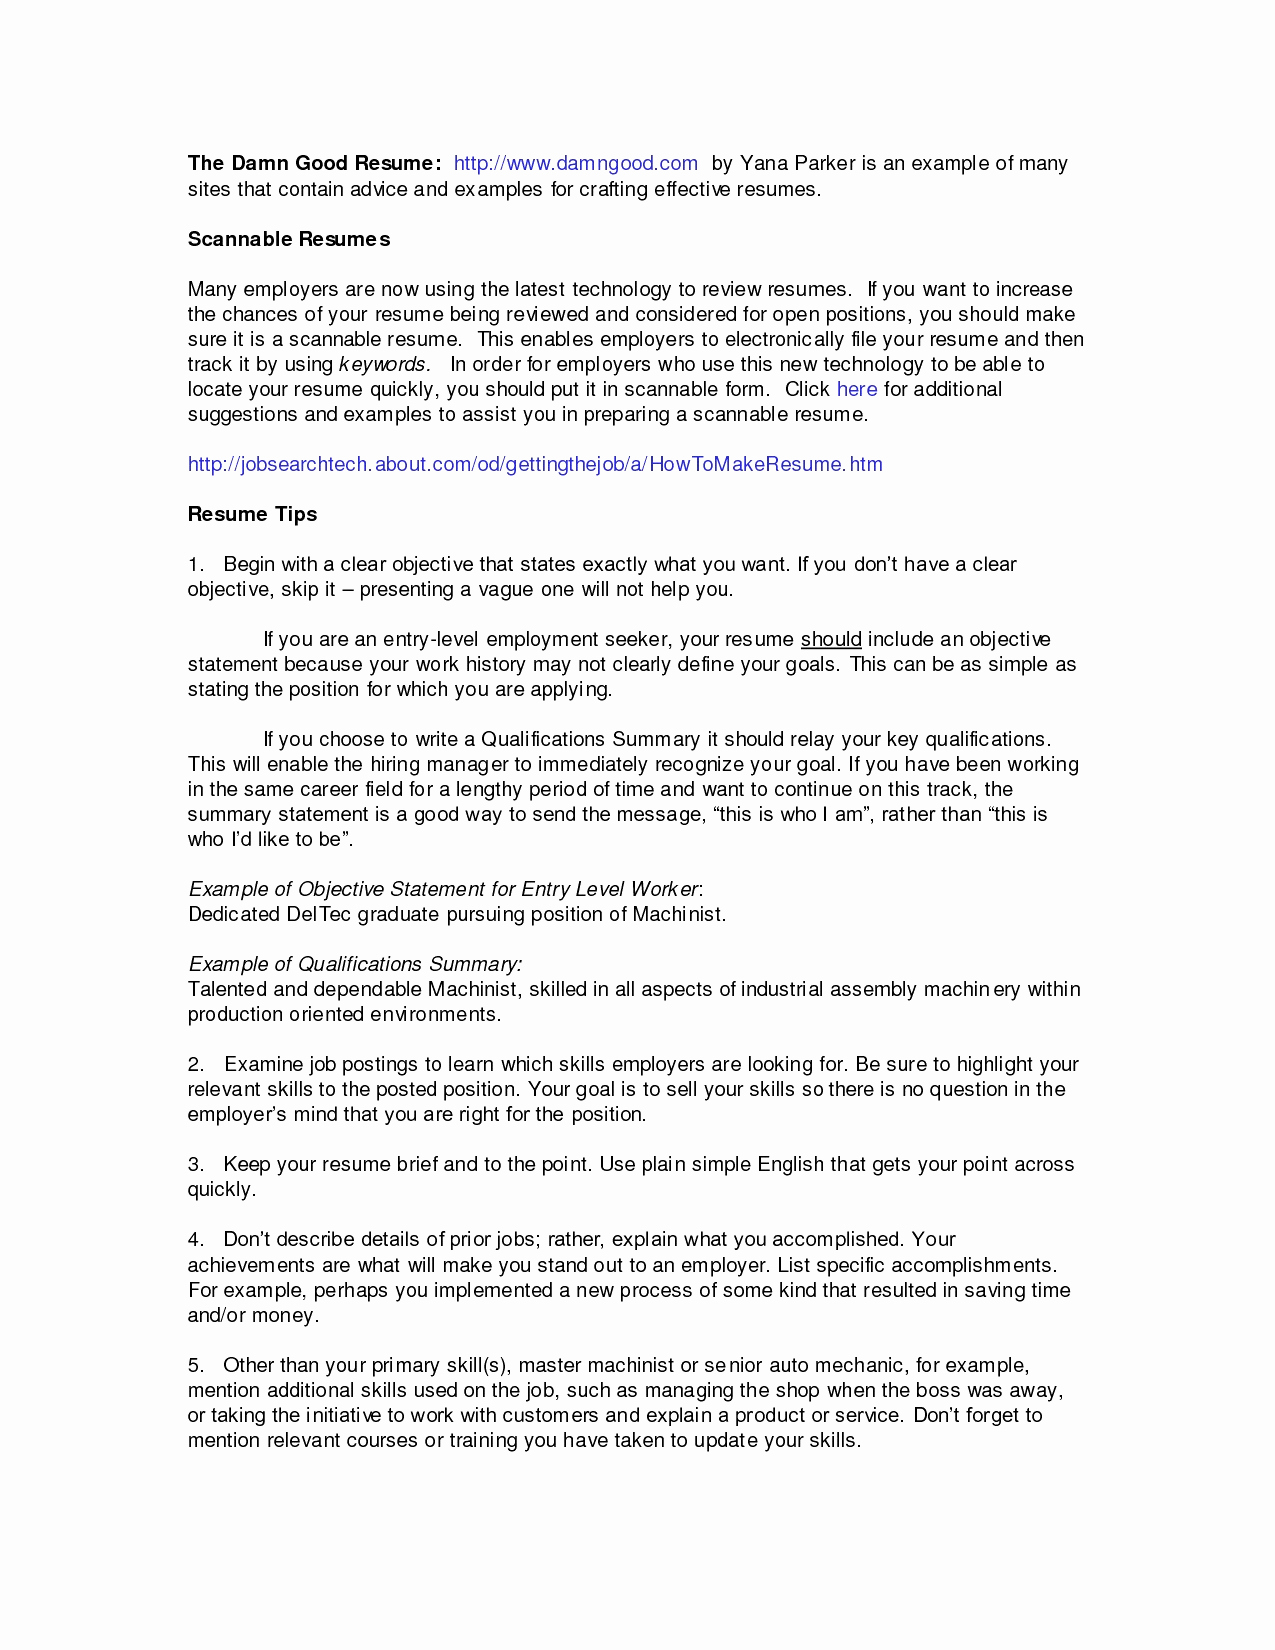 Medical Coder Resume Examples - Medical Coding Resume Examples 20 Medical Coder Resume Samples